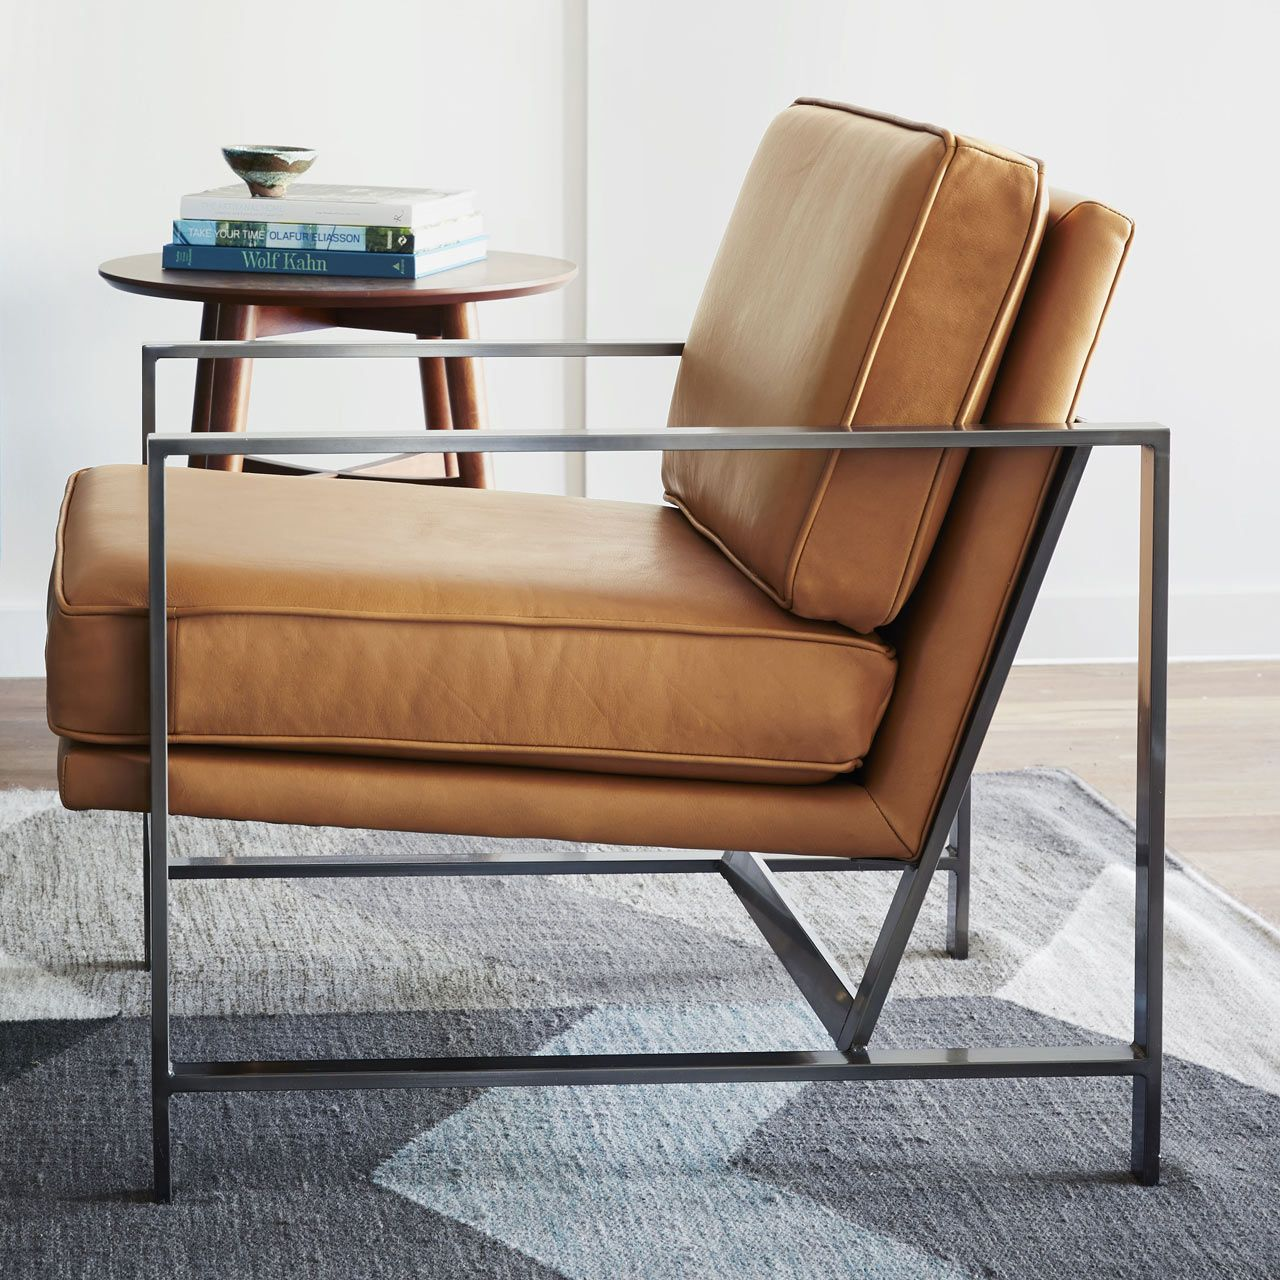 West elm workspace 15 industrial modern industrial for Mid century modern armchairs